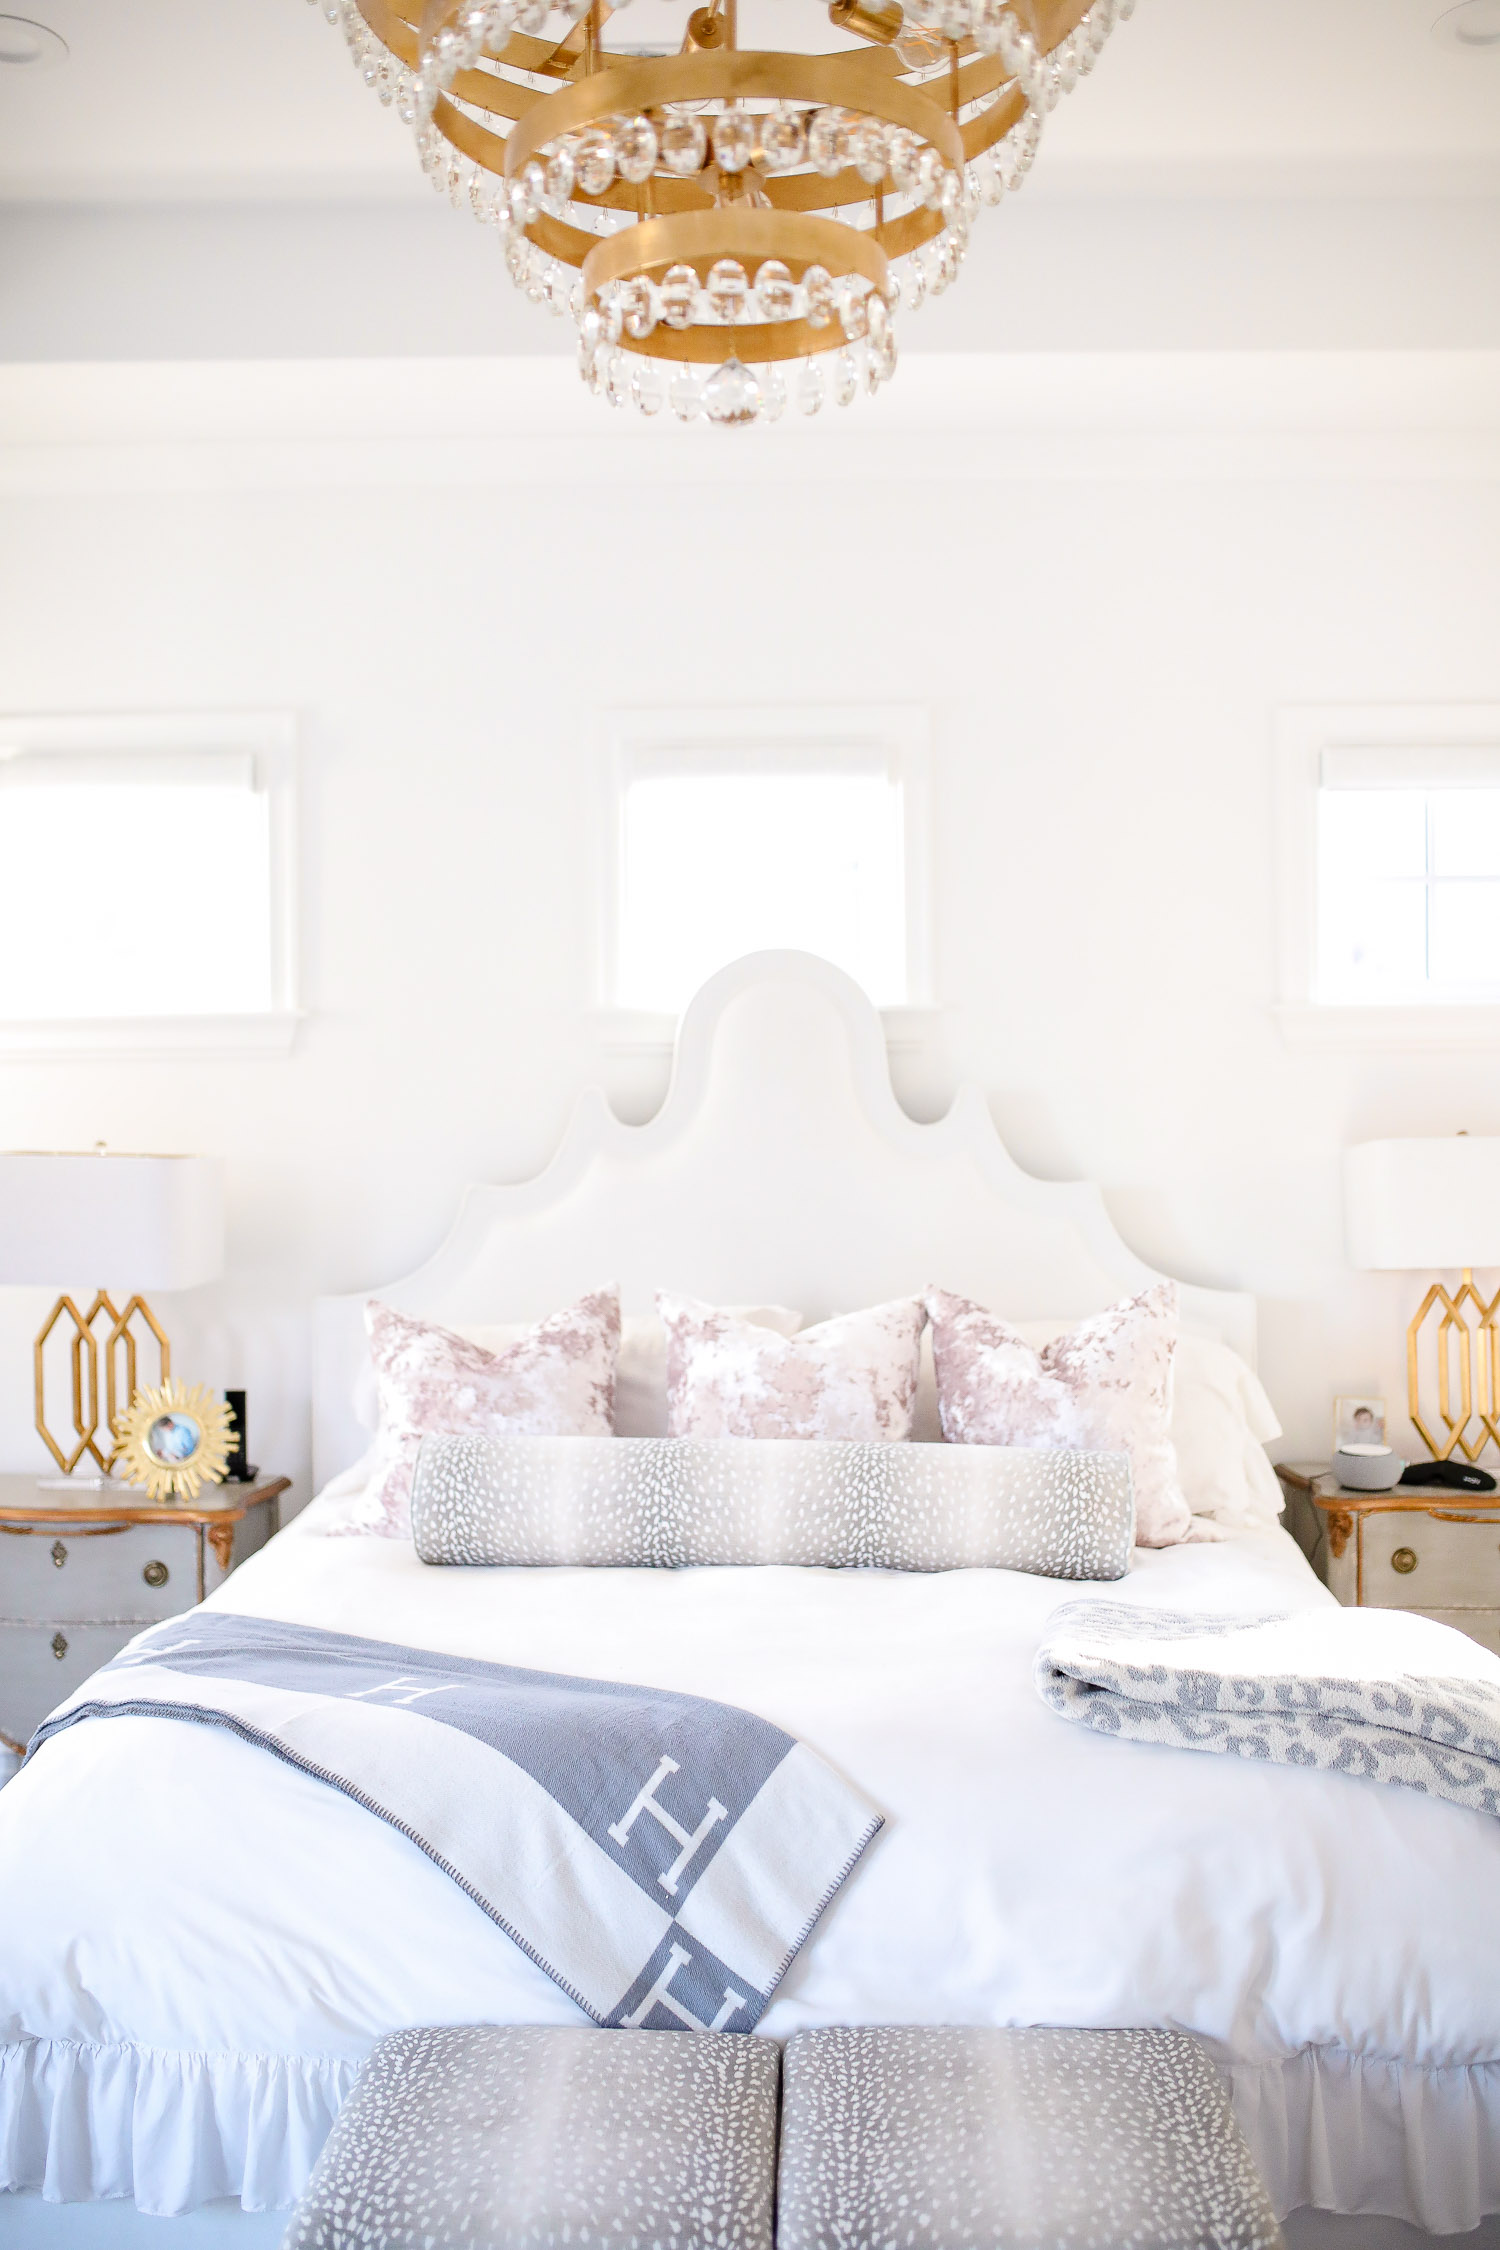 Instagram Recap by popular US lifestyle blog, The Sweetest Thing: image of a bedroom decorated with a Wayfair nightstand, Wayfair Meela Queen Standard Bed, Horchow Prescott Triple Table Lamp, Etsy Lavish Velvet // Mist Pillow COVER, Etsy The Little Bolster : Antelope Linen Print, Nordstrom Leopard Throw Blanket NORDSTROM, Wayfair Buckhead 6-Light Candle Style Classic / Traditional Chandelier, Horchow Crystorama Perla 5-Light Chandelier, and Etsy The Skirted Ottoman : Antelope Linen Print.